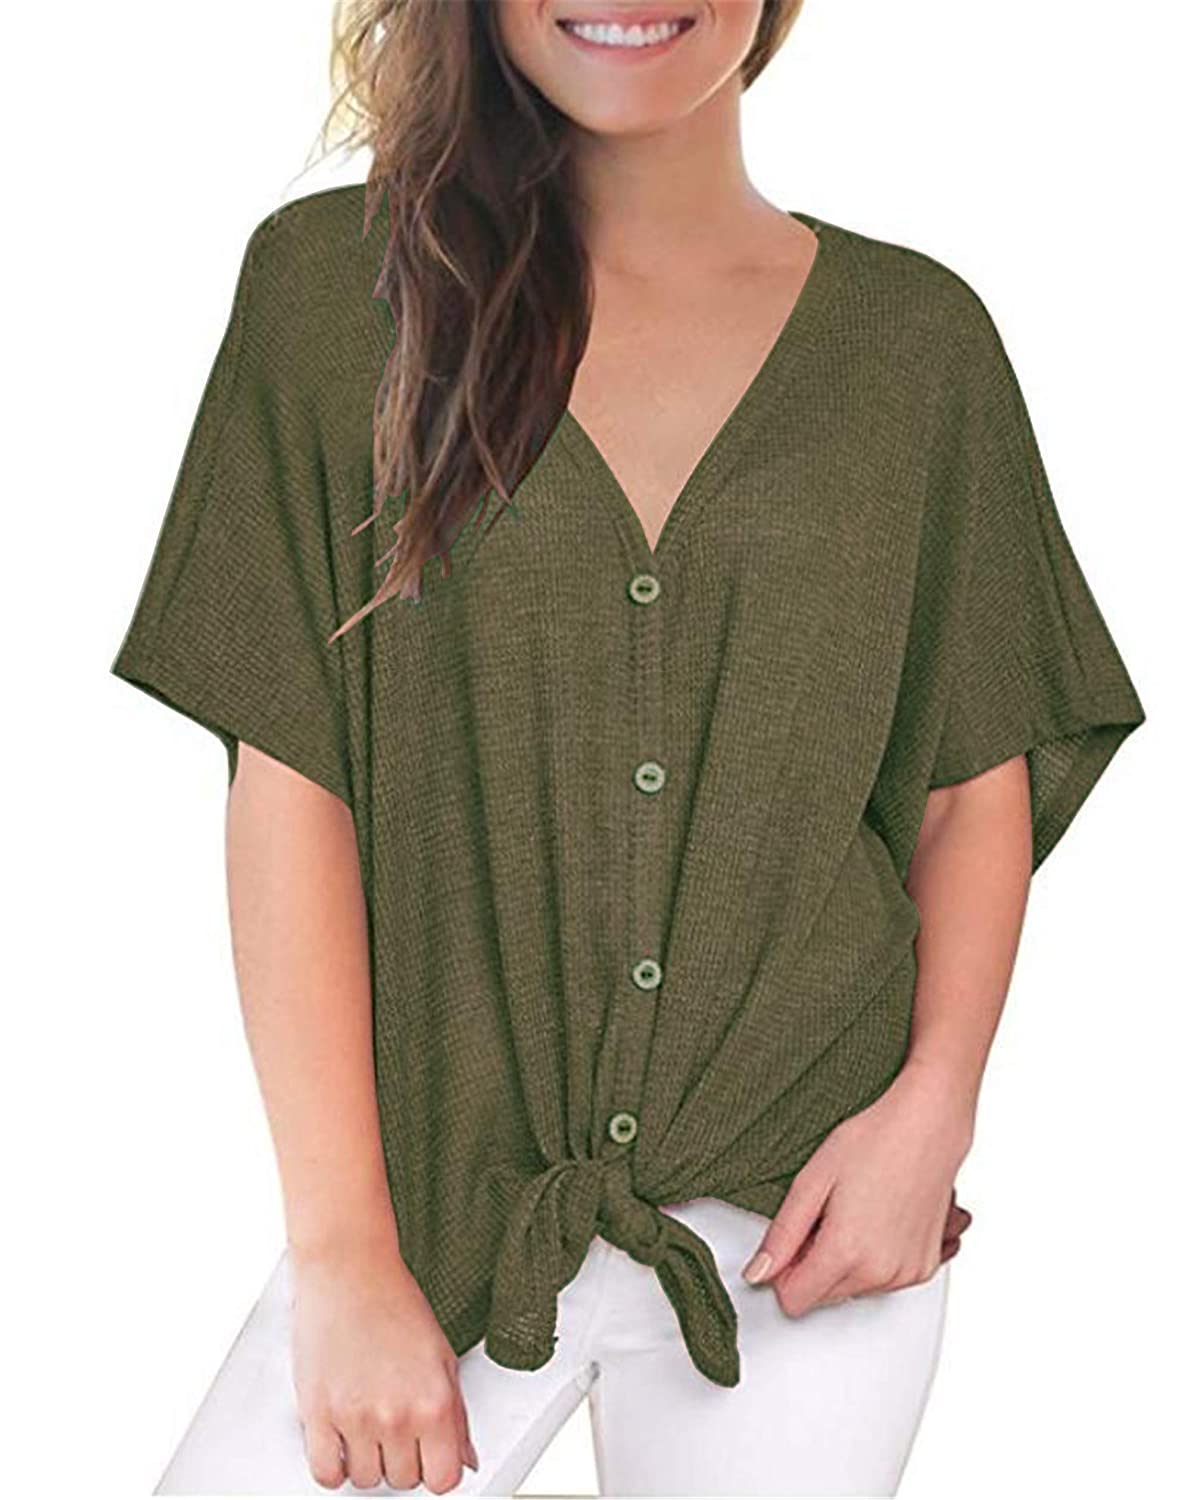 7a83387a8b3d UGET Womens Loose Blouse V Neck Button Down T Shirts Tie Front Knot Casual  Summer Shirt Tops at Amazon Women's Clothing store: